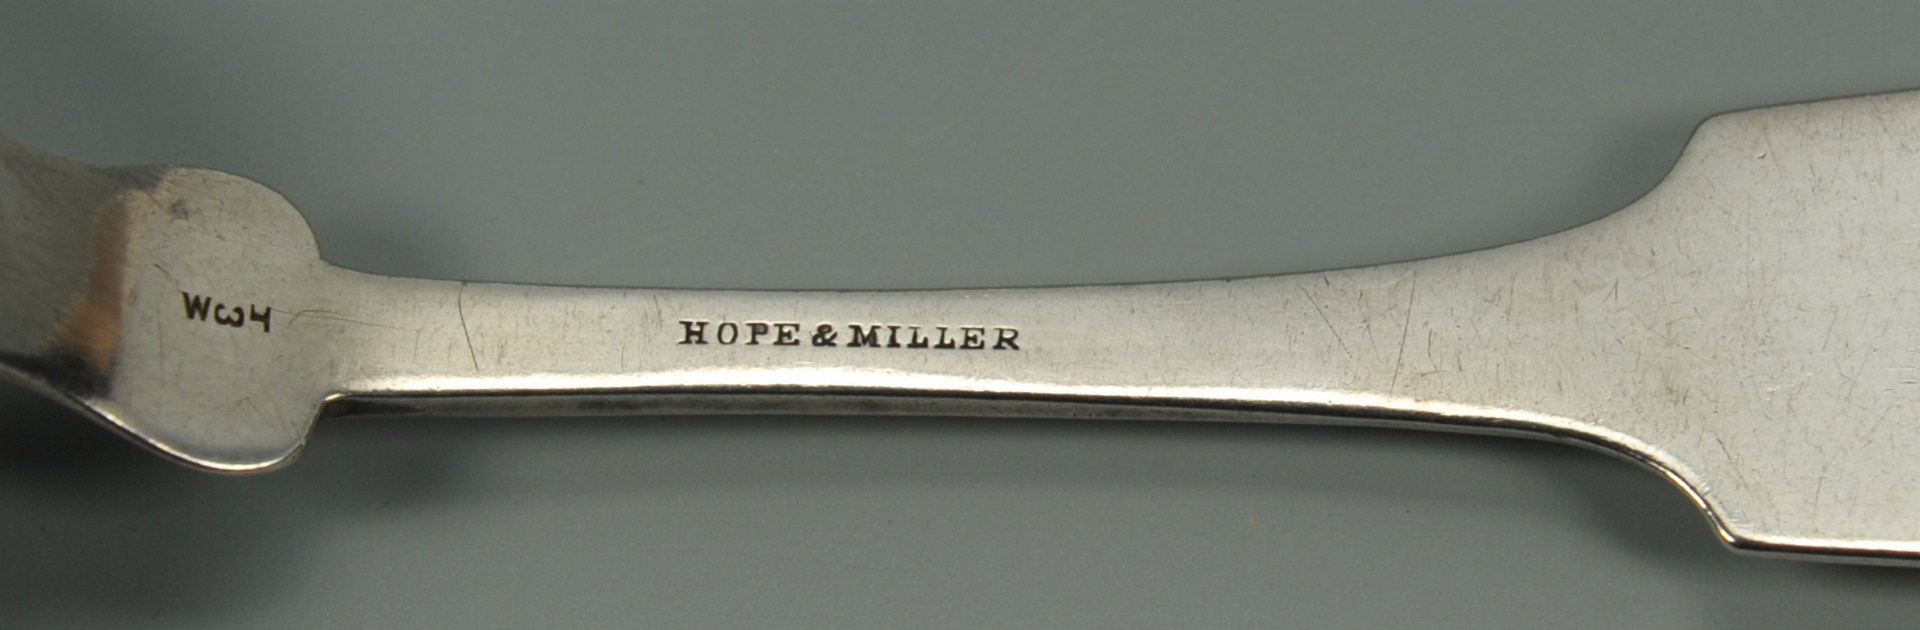 Lot 47: 4 Hope & Miller Knoxville Coin Spoons